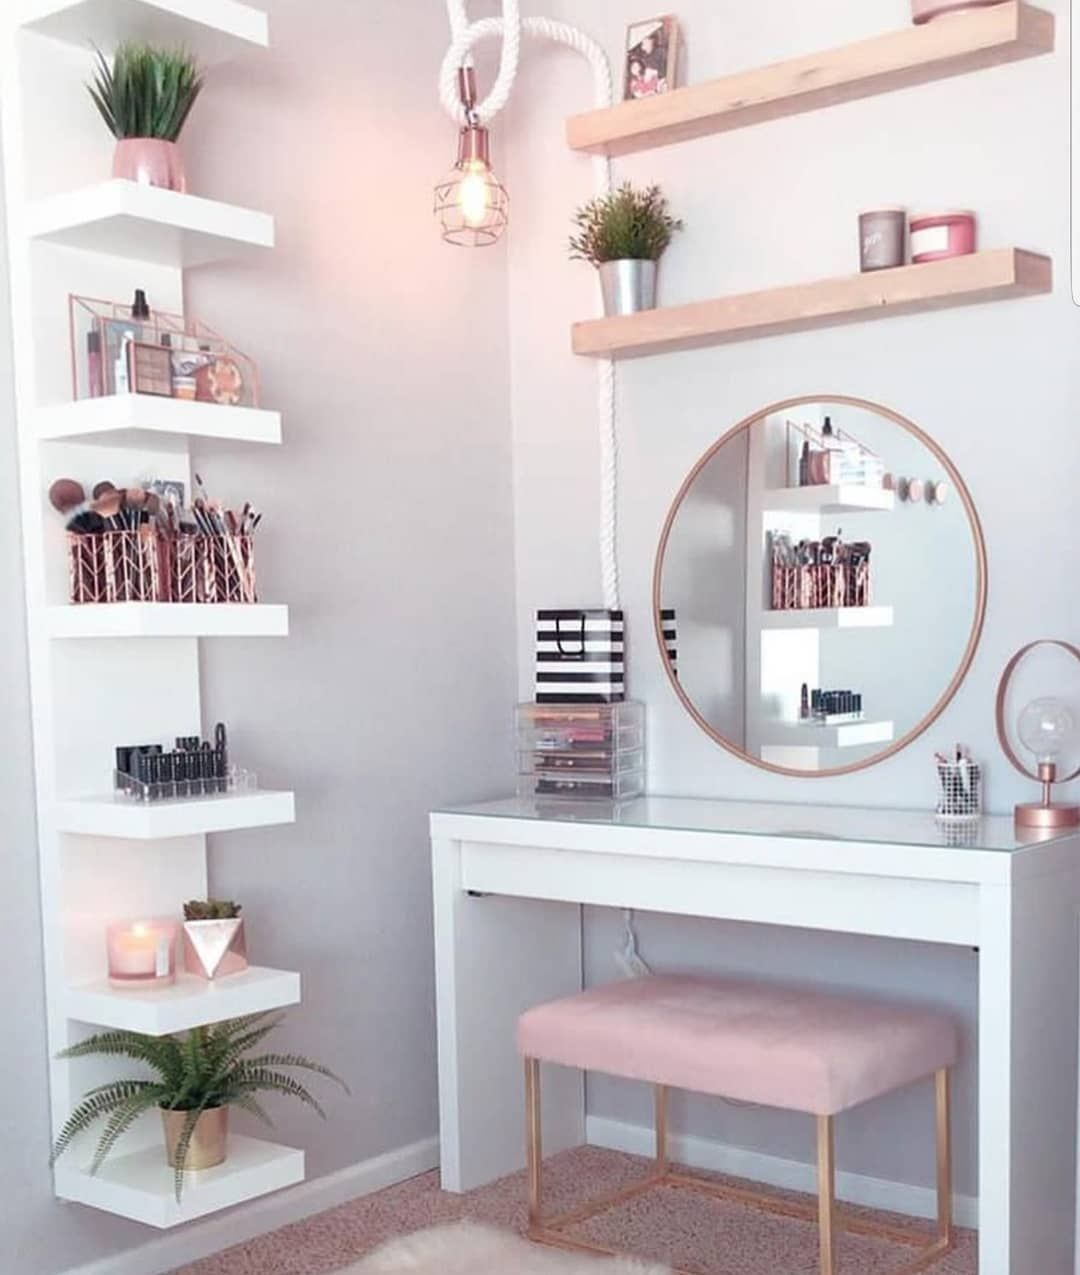 Pin on Deco chambre coconing